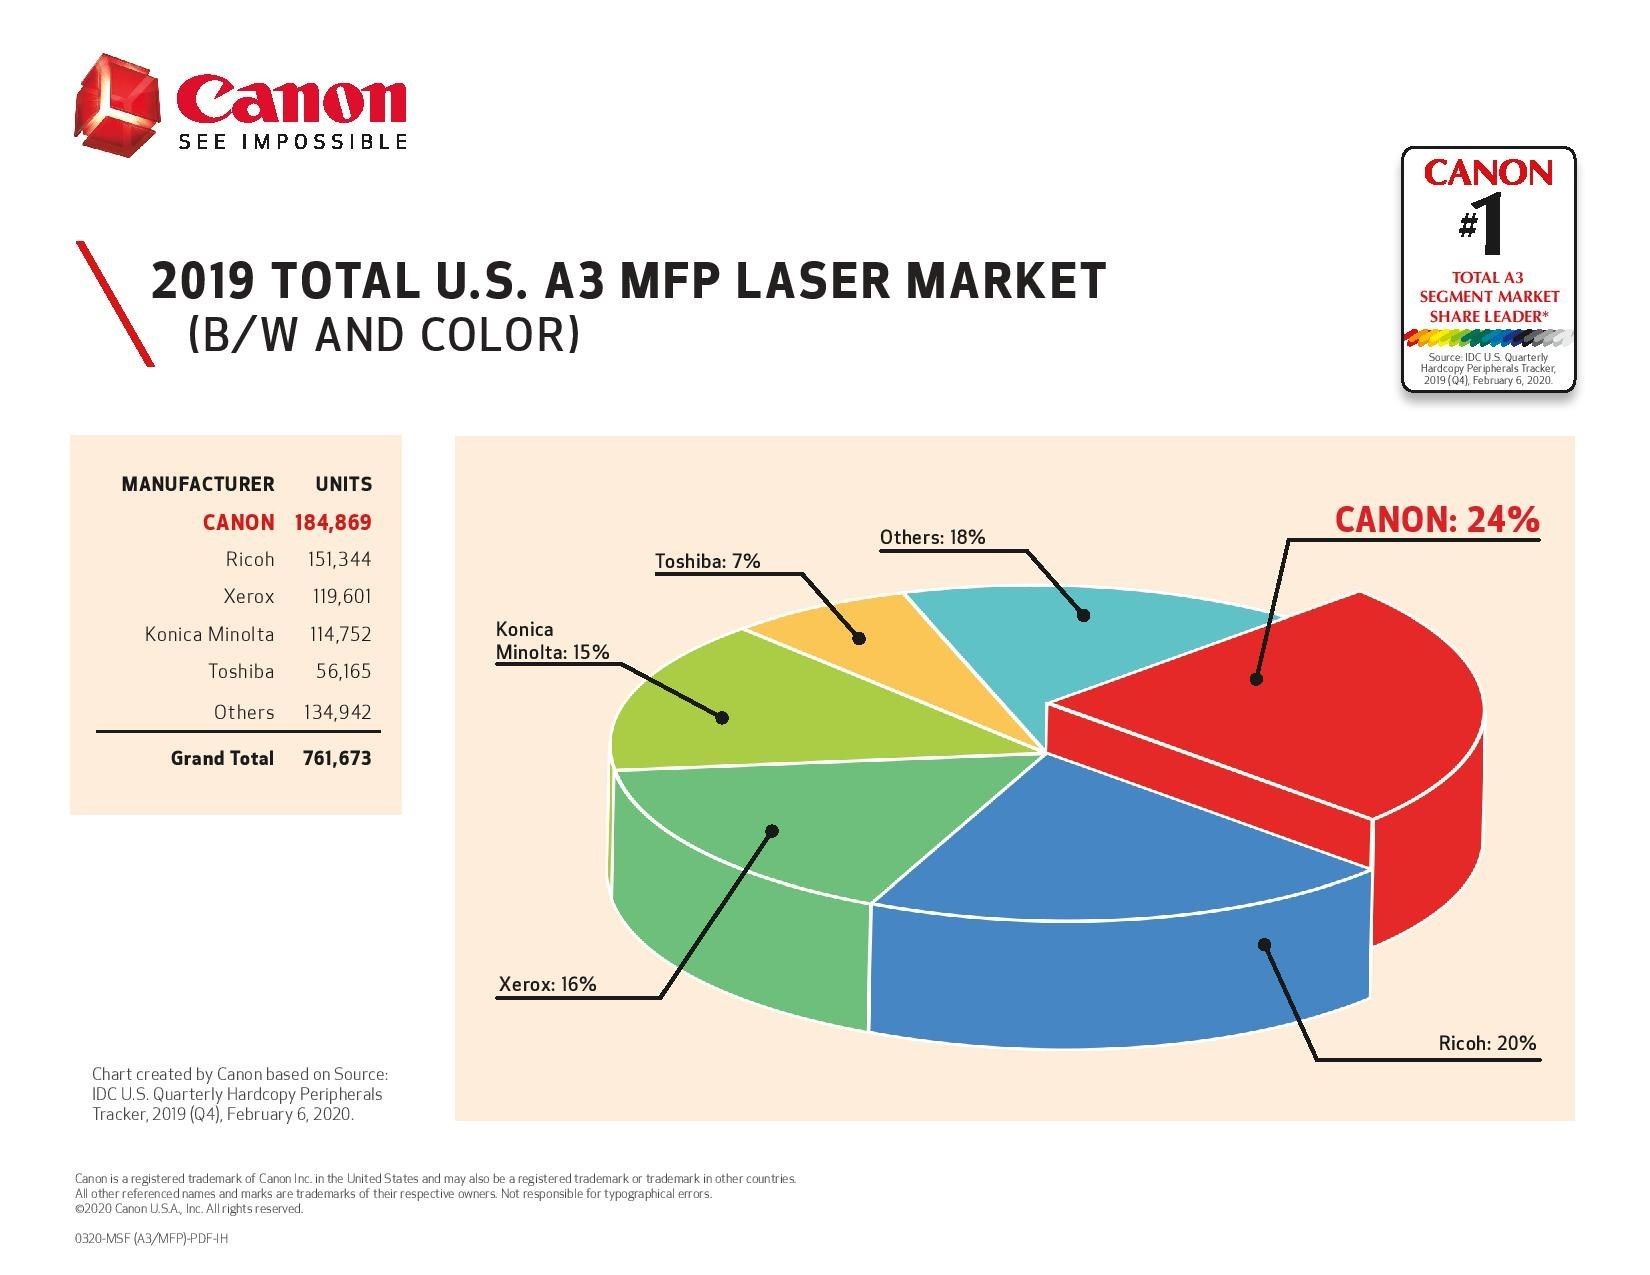 Canon U.S.A. Ranked #1 Market Share Position in All U.S. A3 Laser MFP Segments in 2019